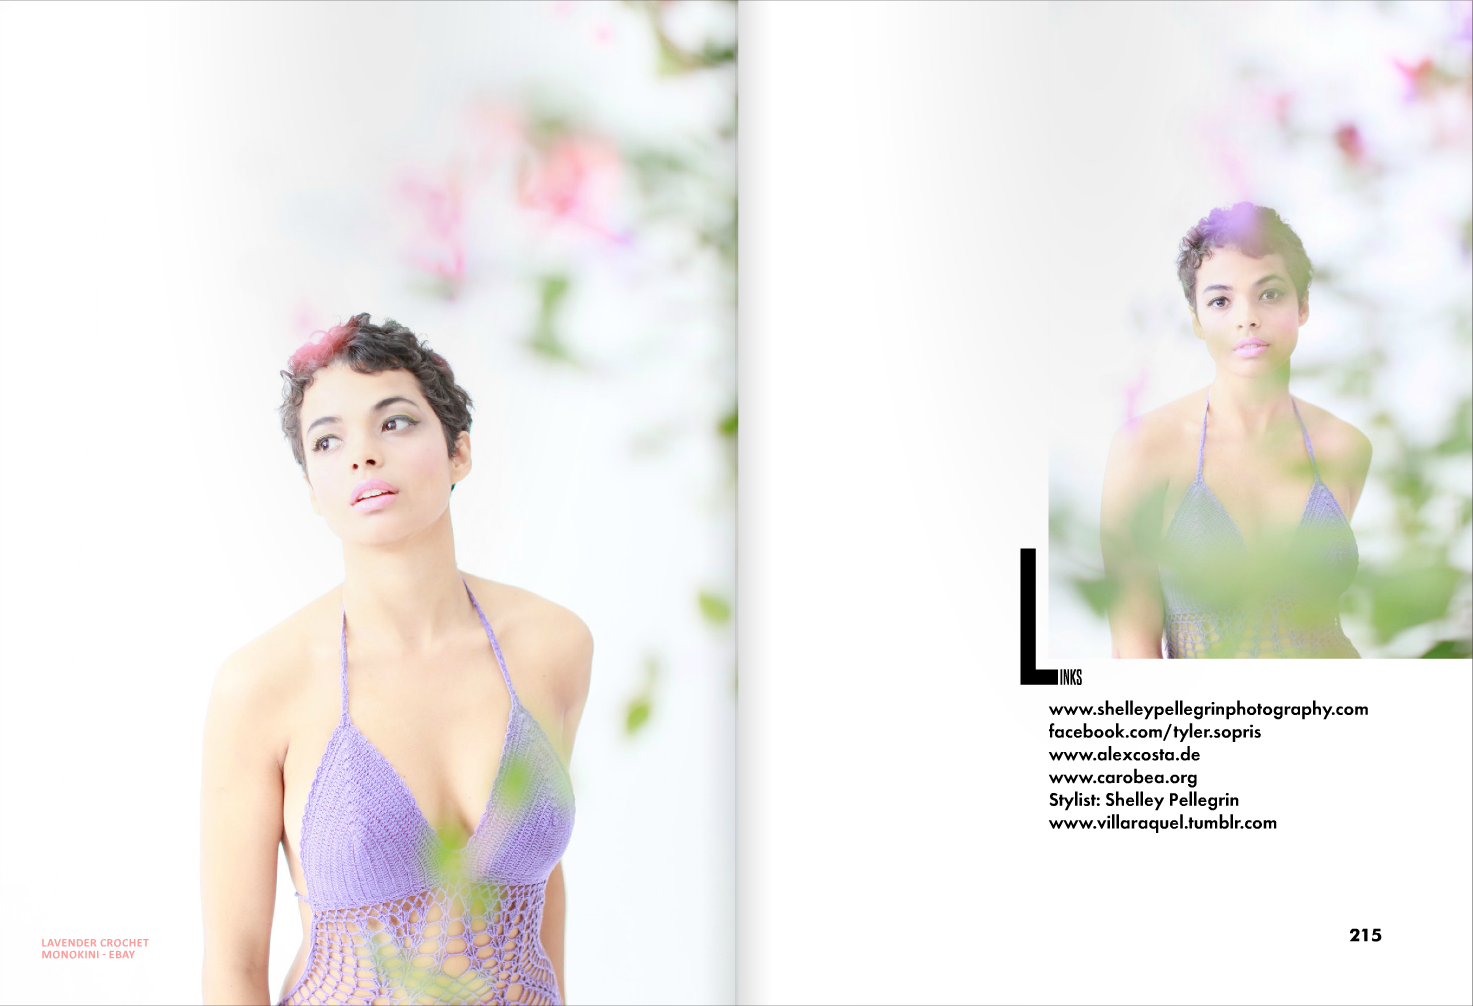 magazine layout photos of fashion model actress in a lavendar monokini